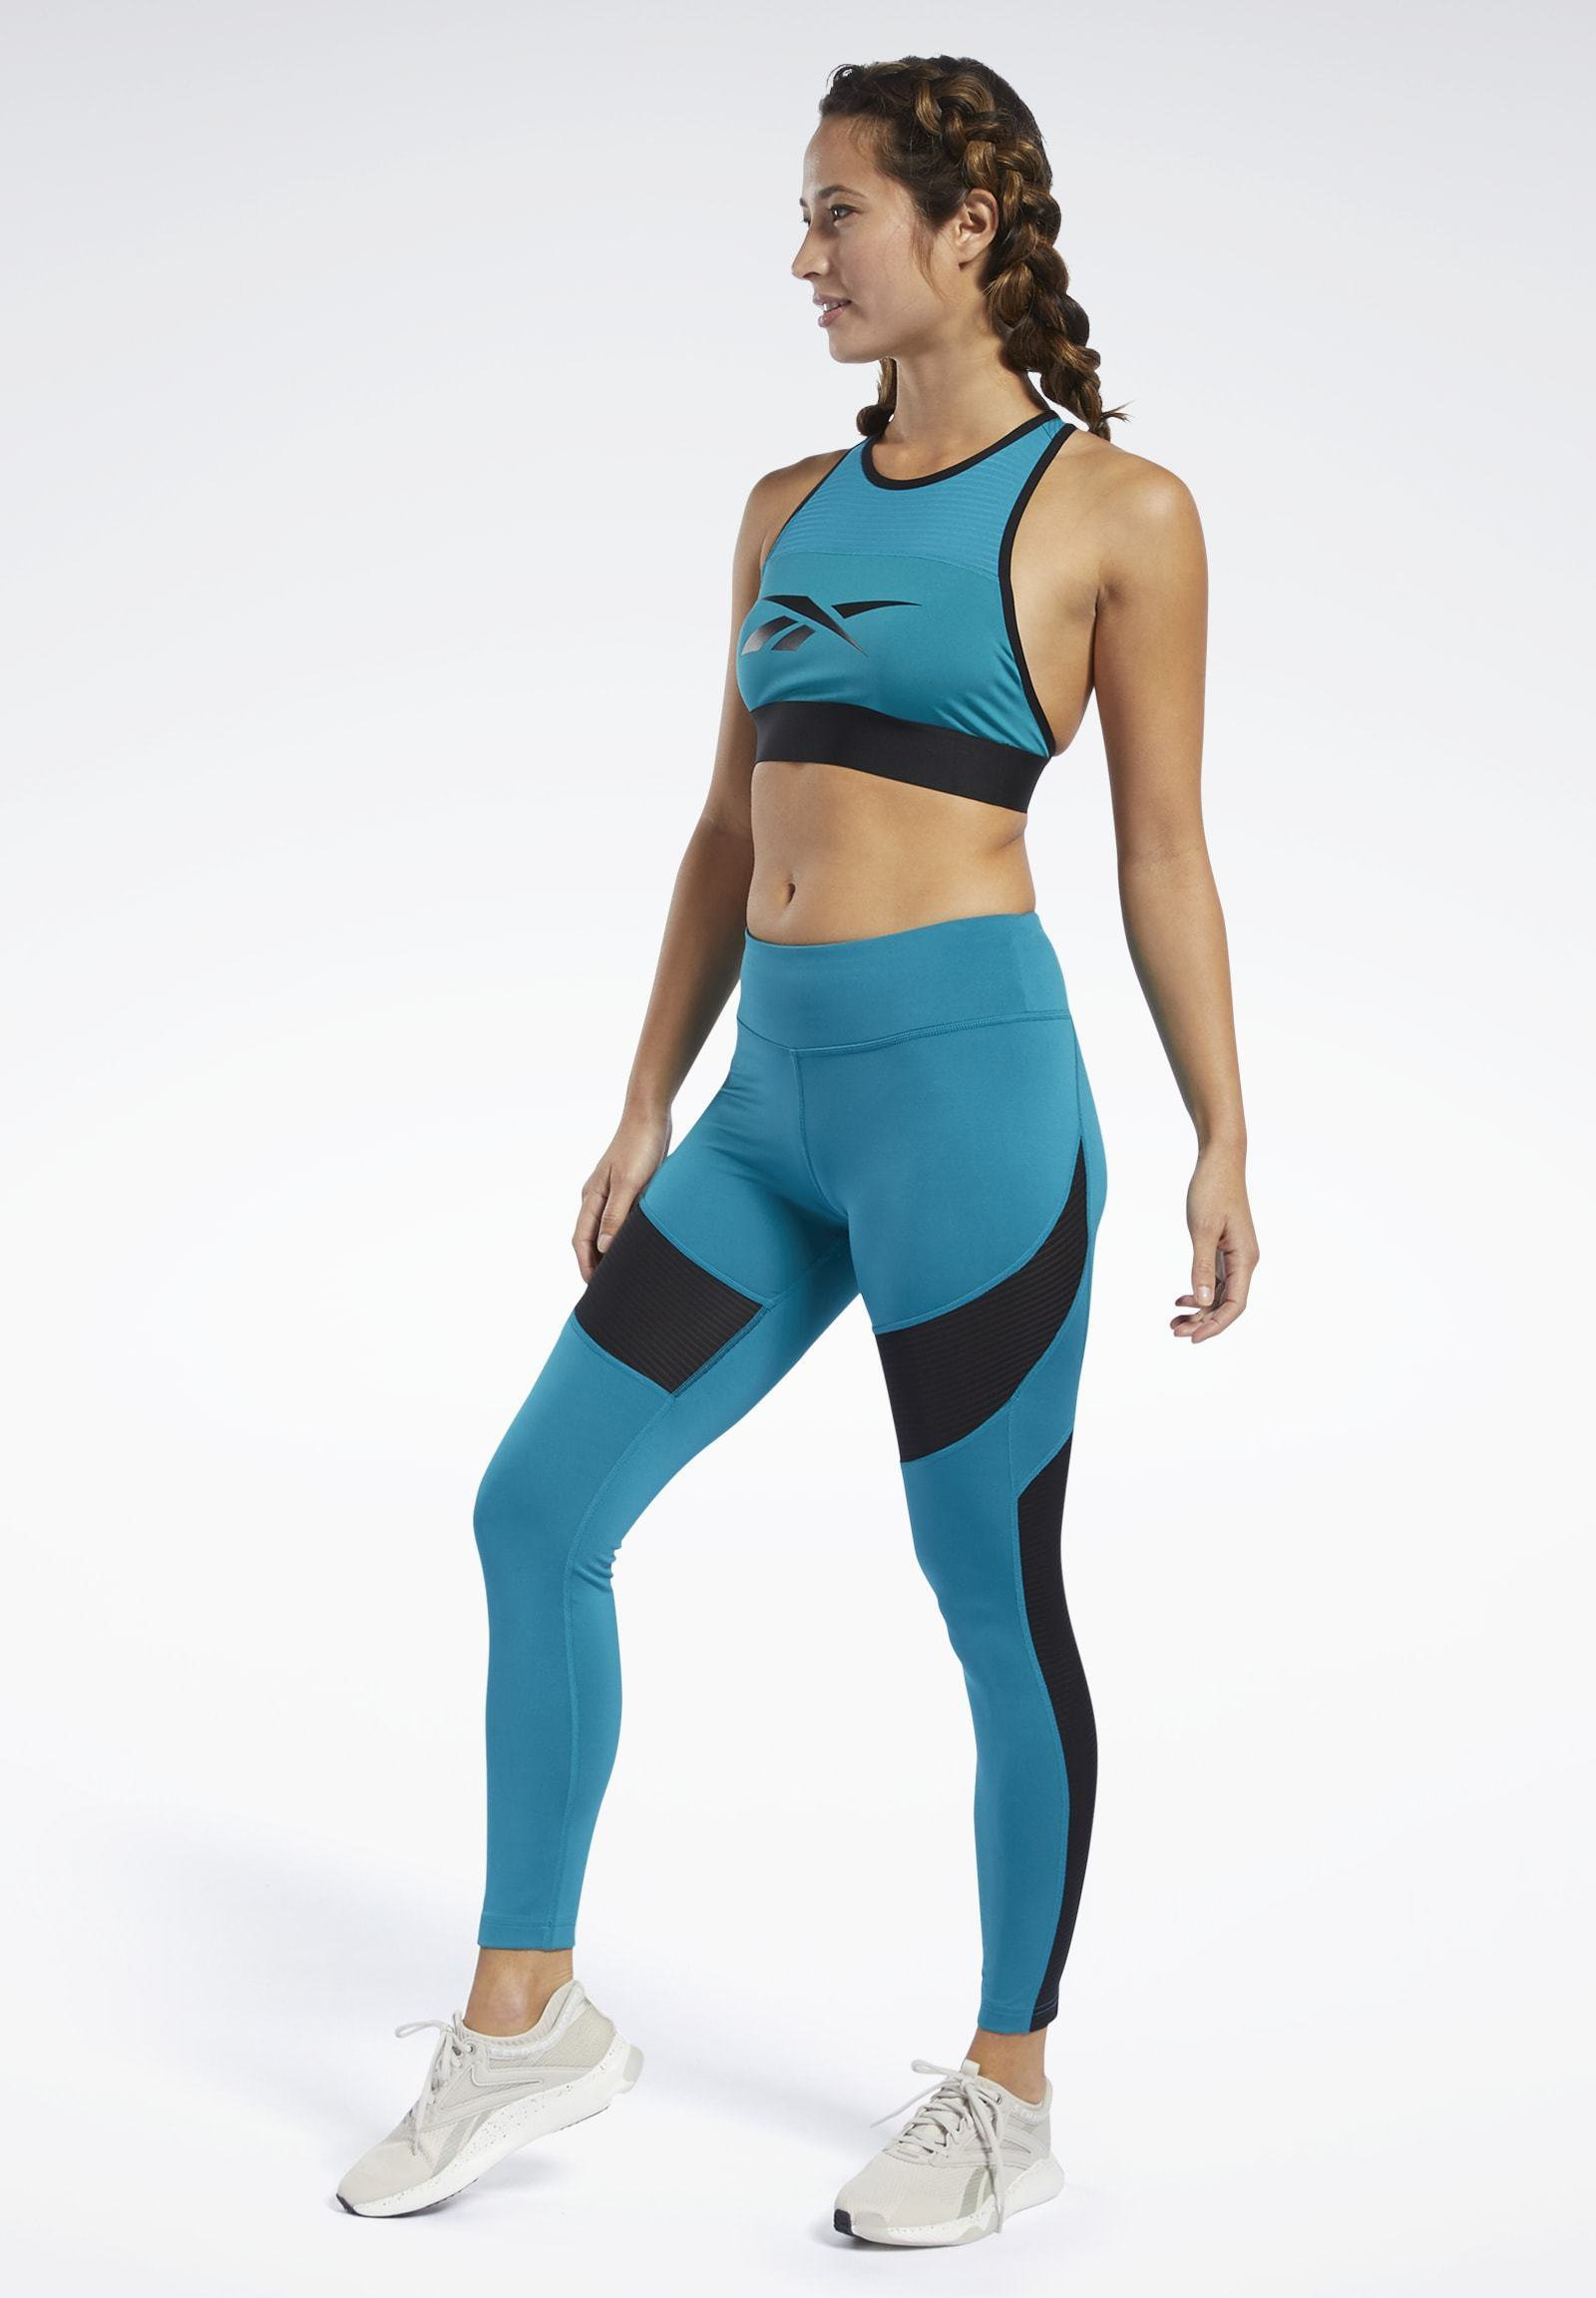 Reebok Workout Ready Mesh Tights - Seaport Teal